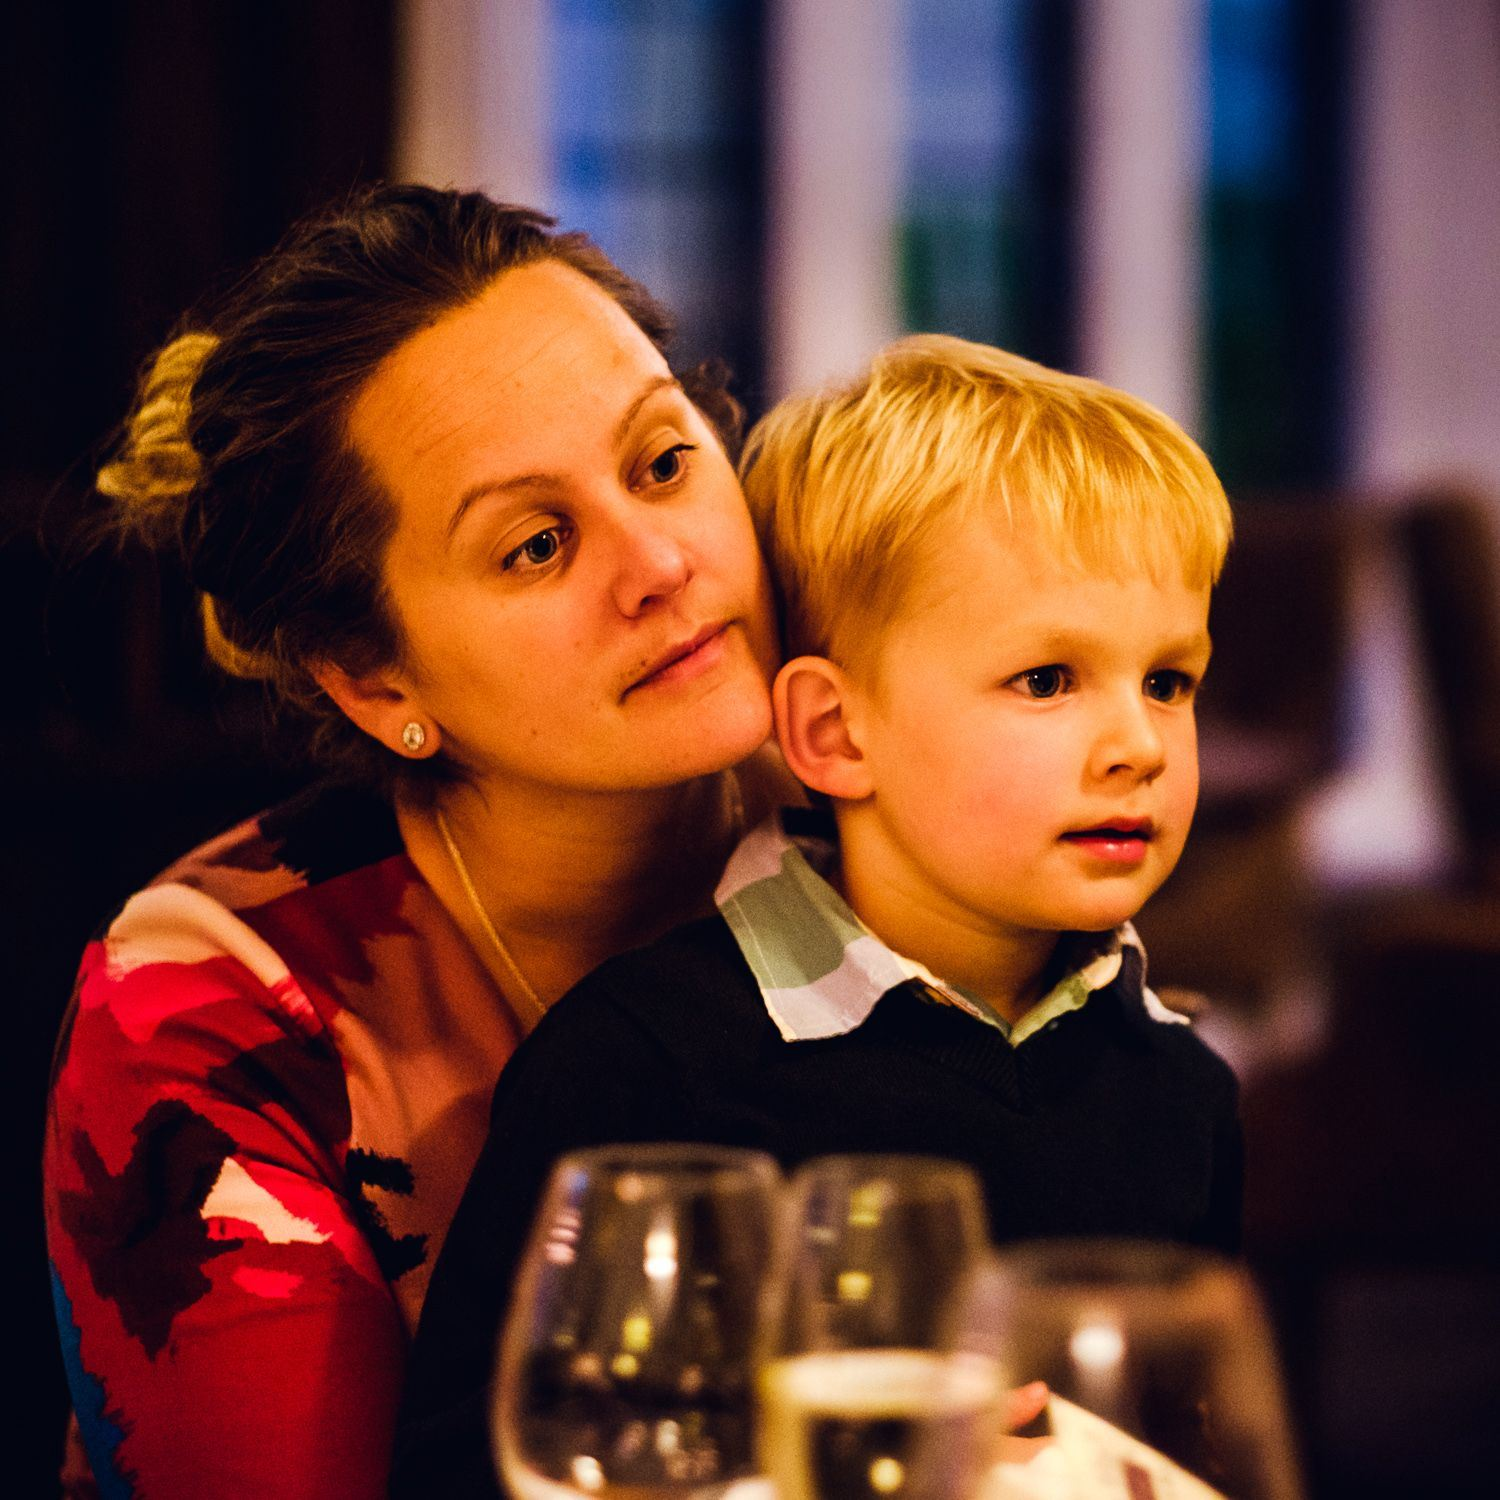 Candid portrait of mother and son at event